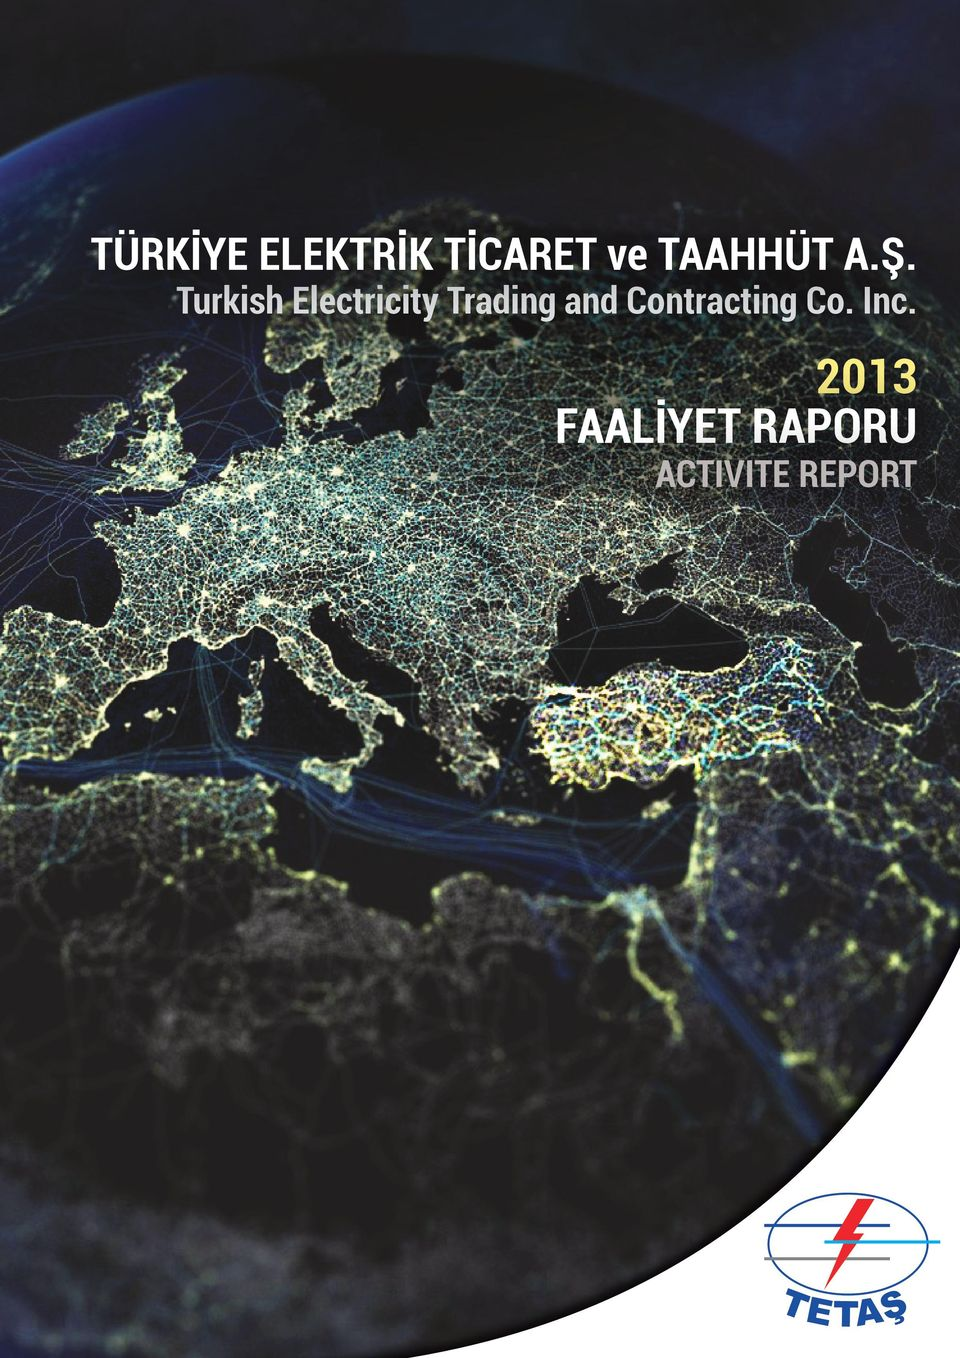 Turkish Electricity Trading and